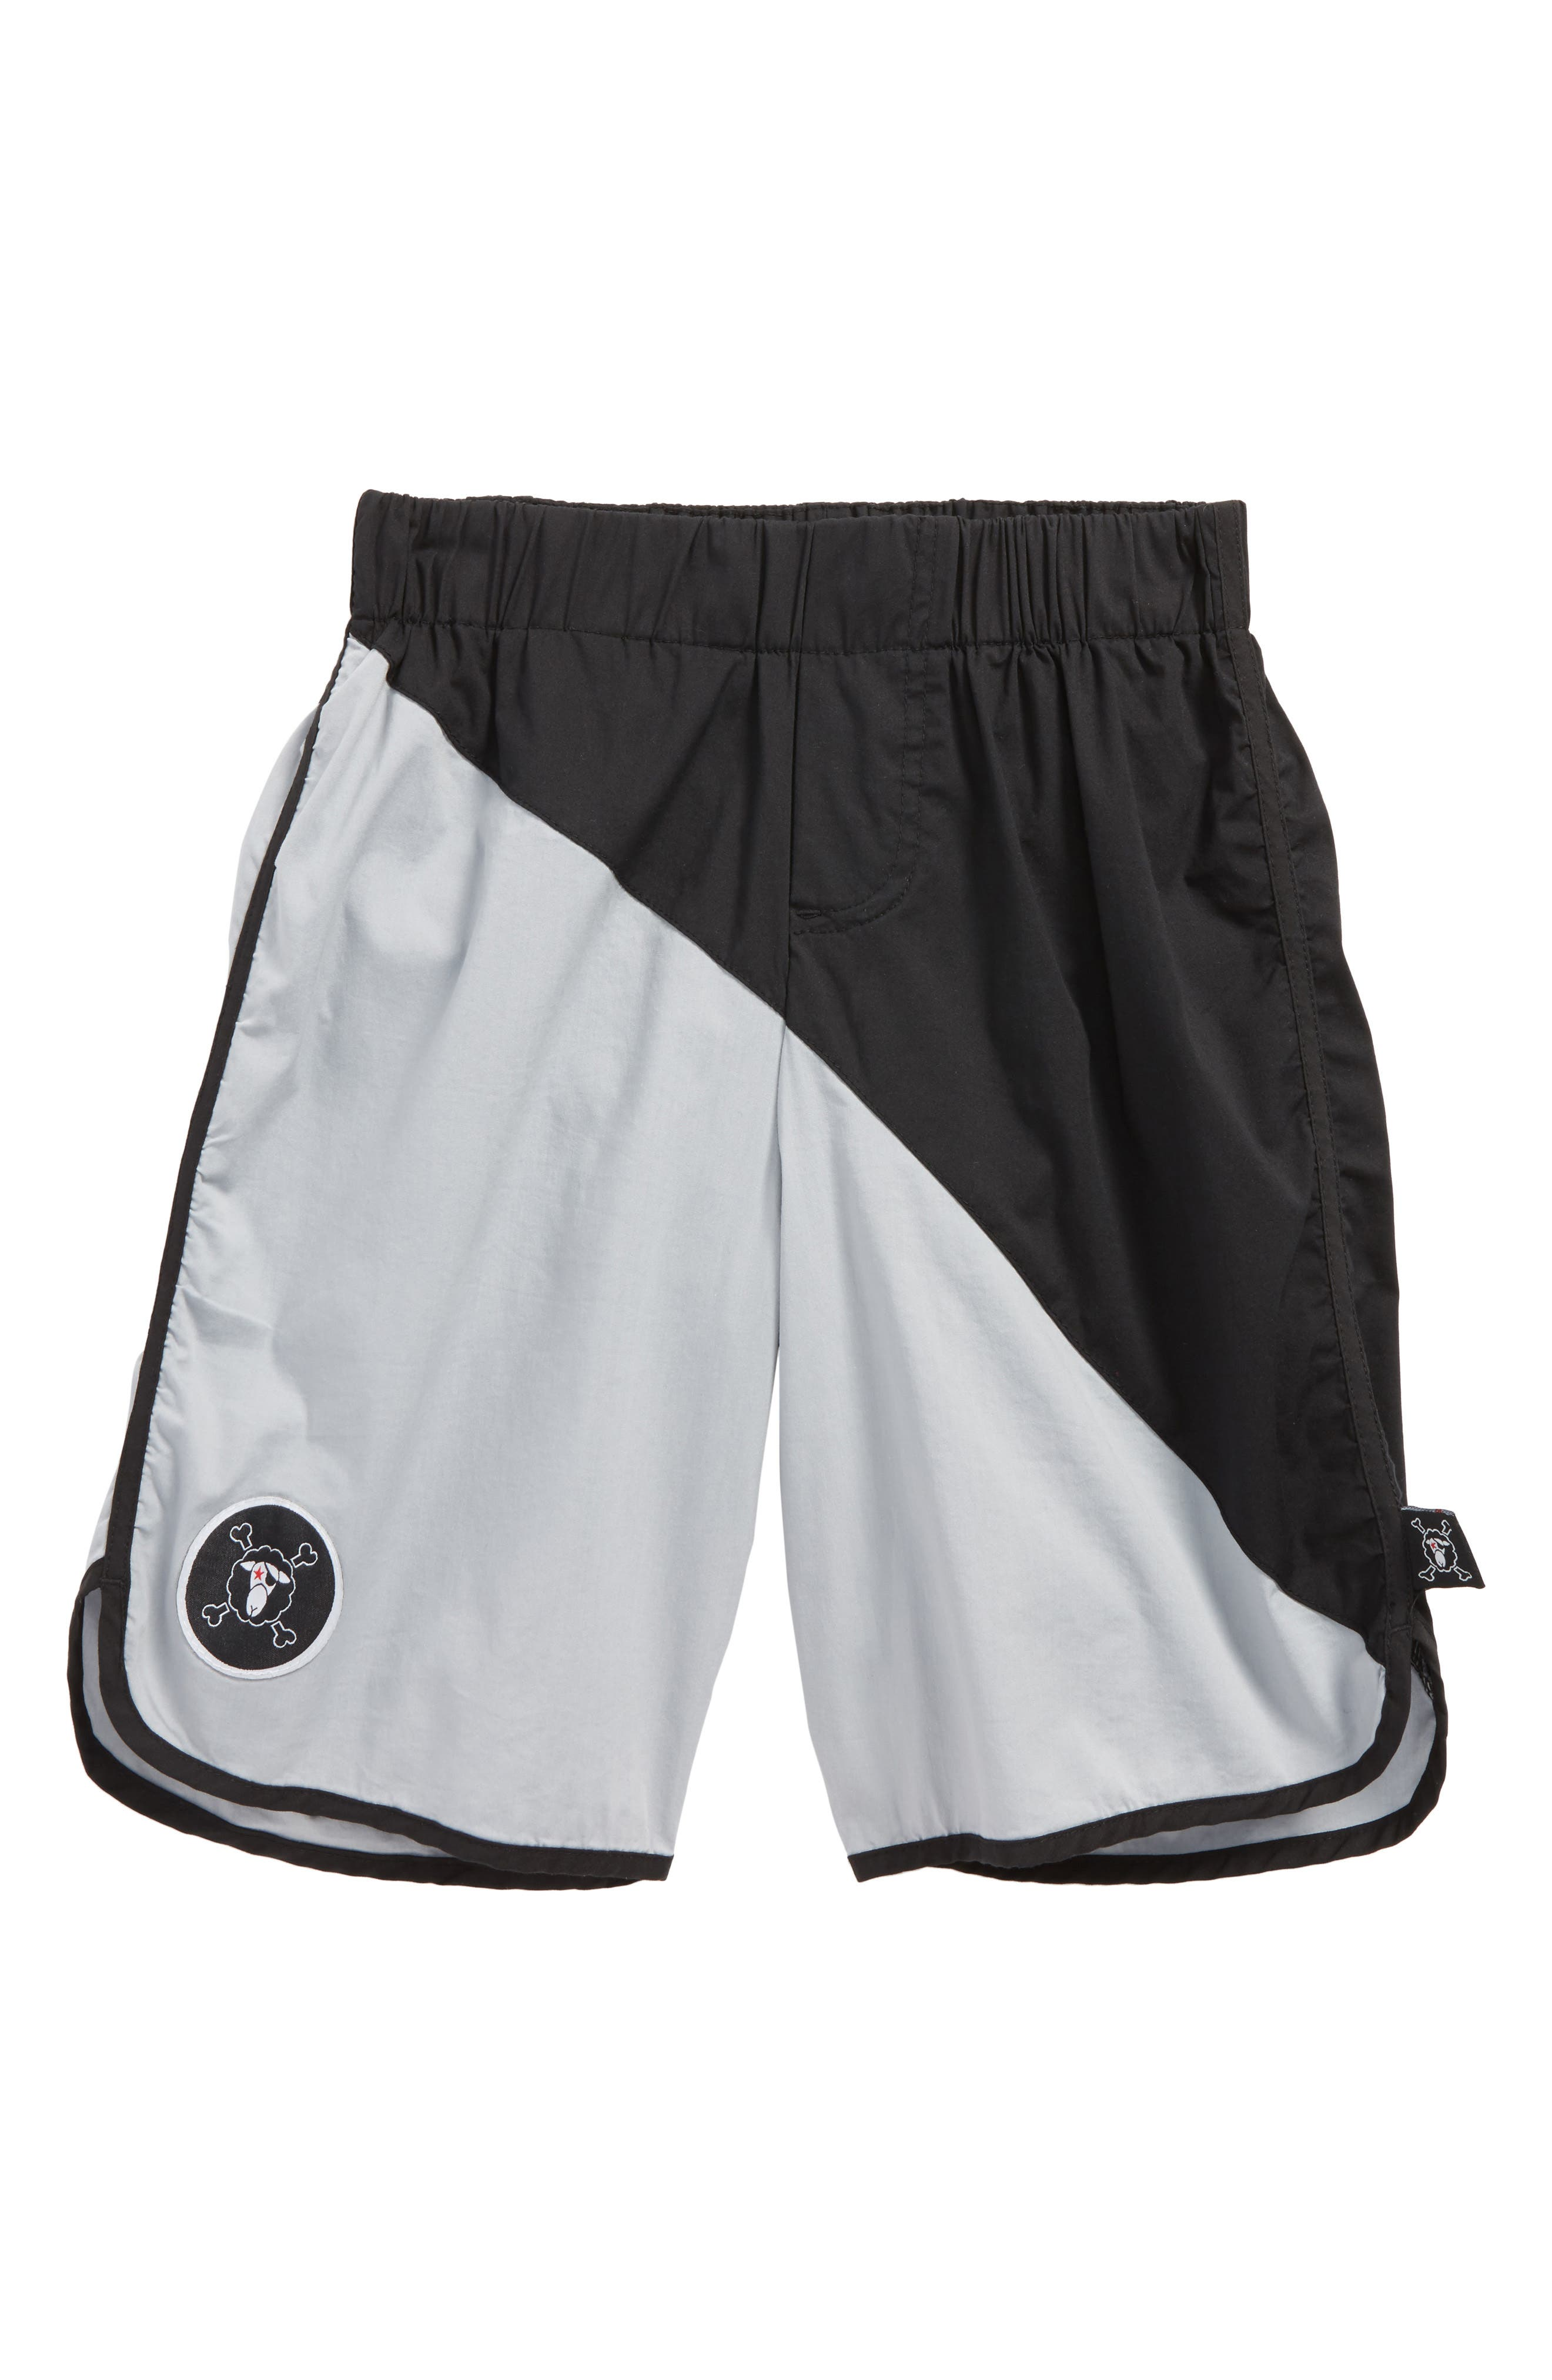 Colorblock Board Shorts,                             Main thumbnail 1, color,                             001